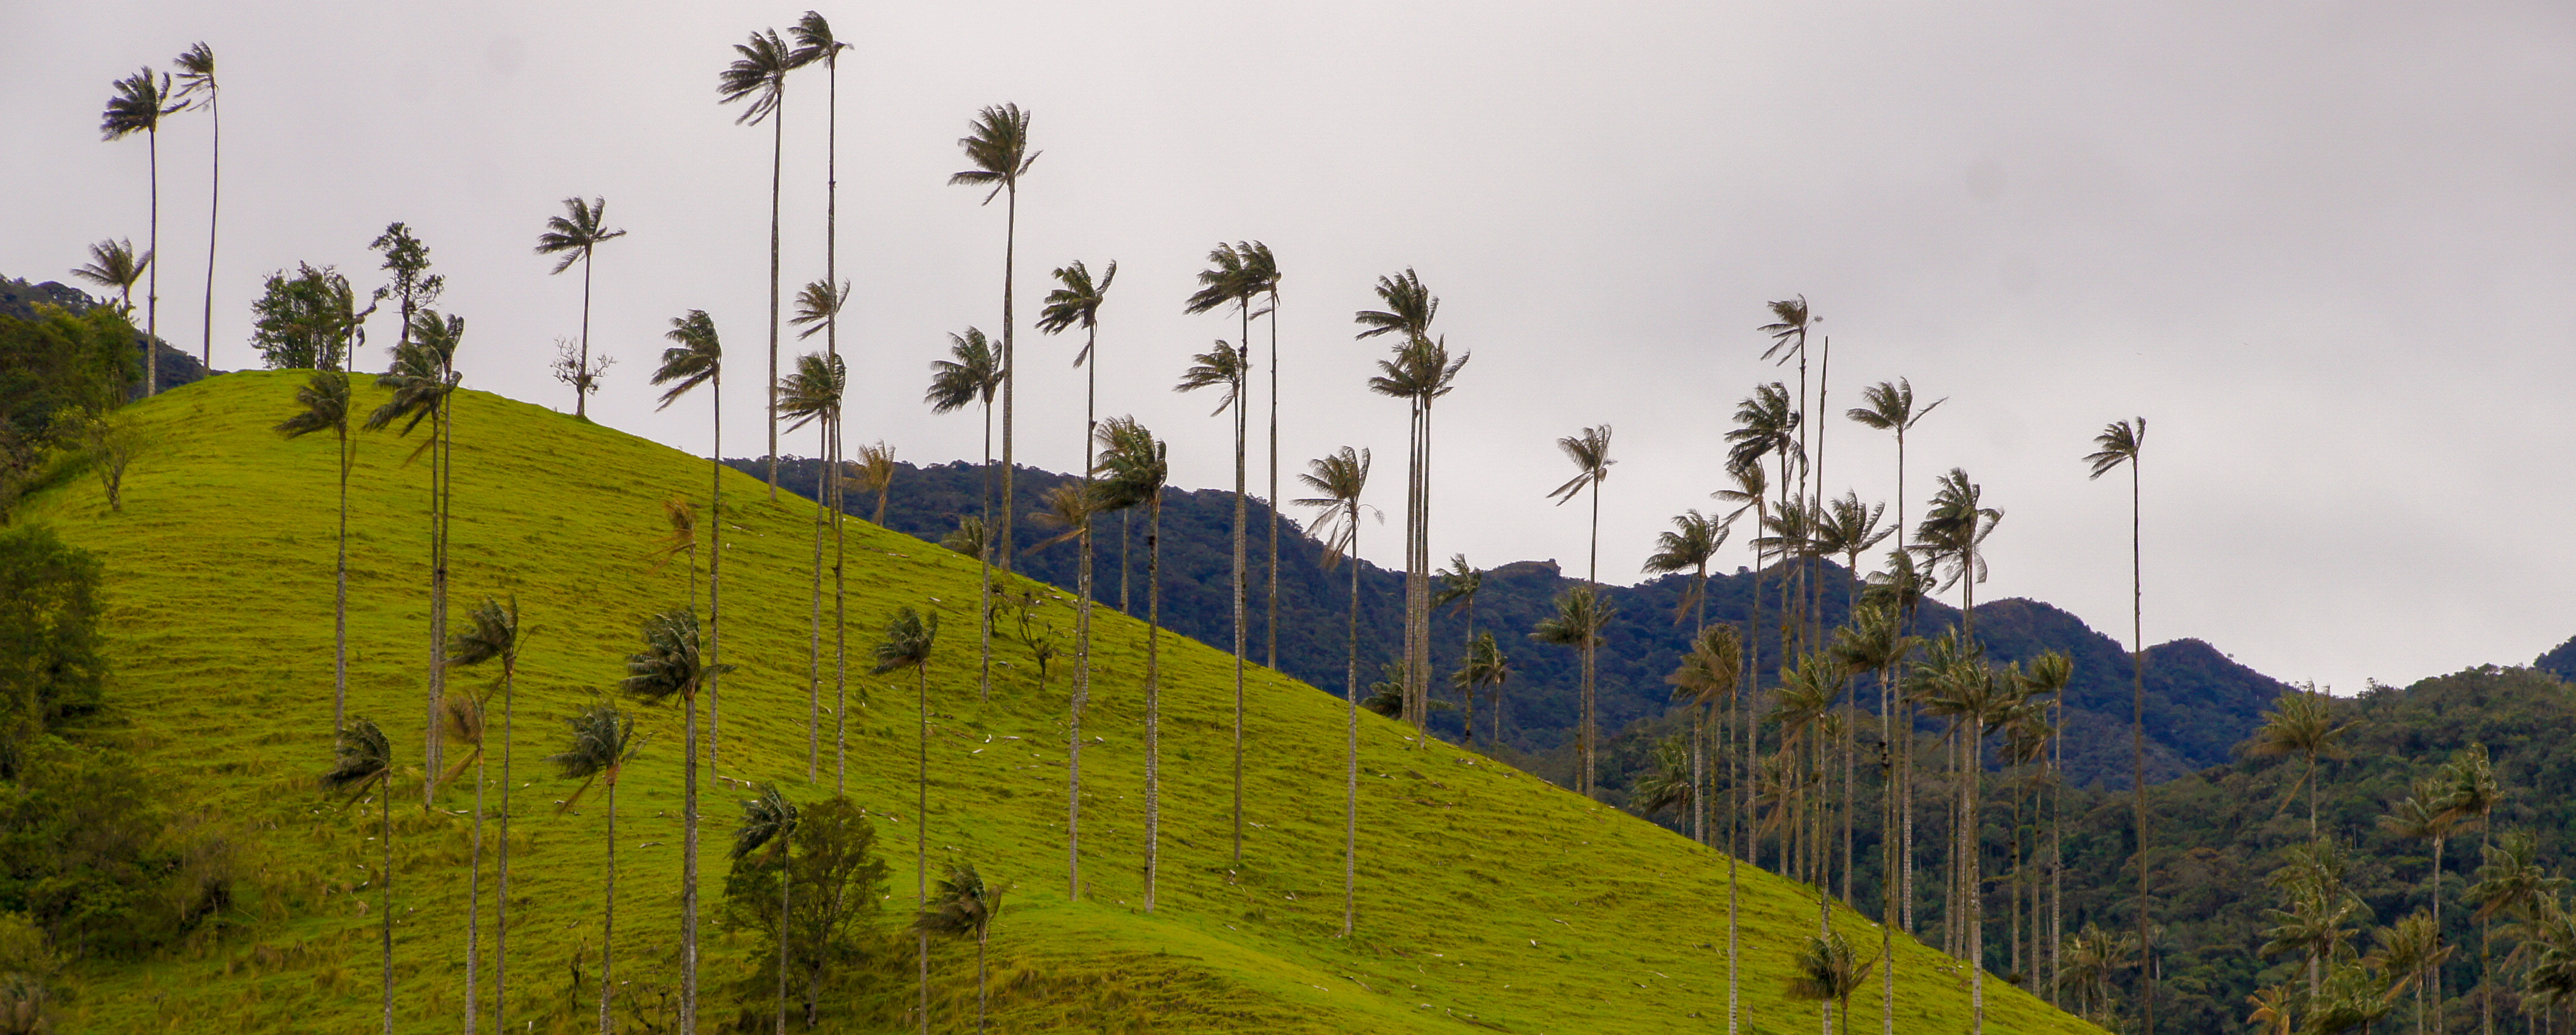 REGION DU CAFE - VALLEE DE COCORA